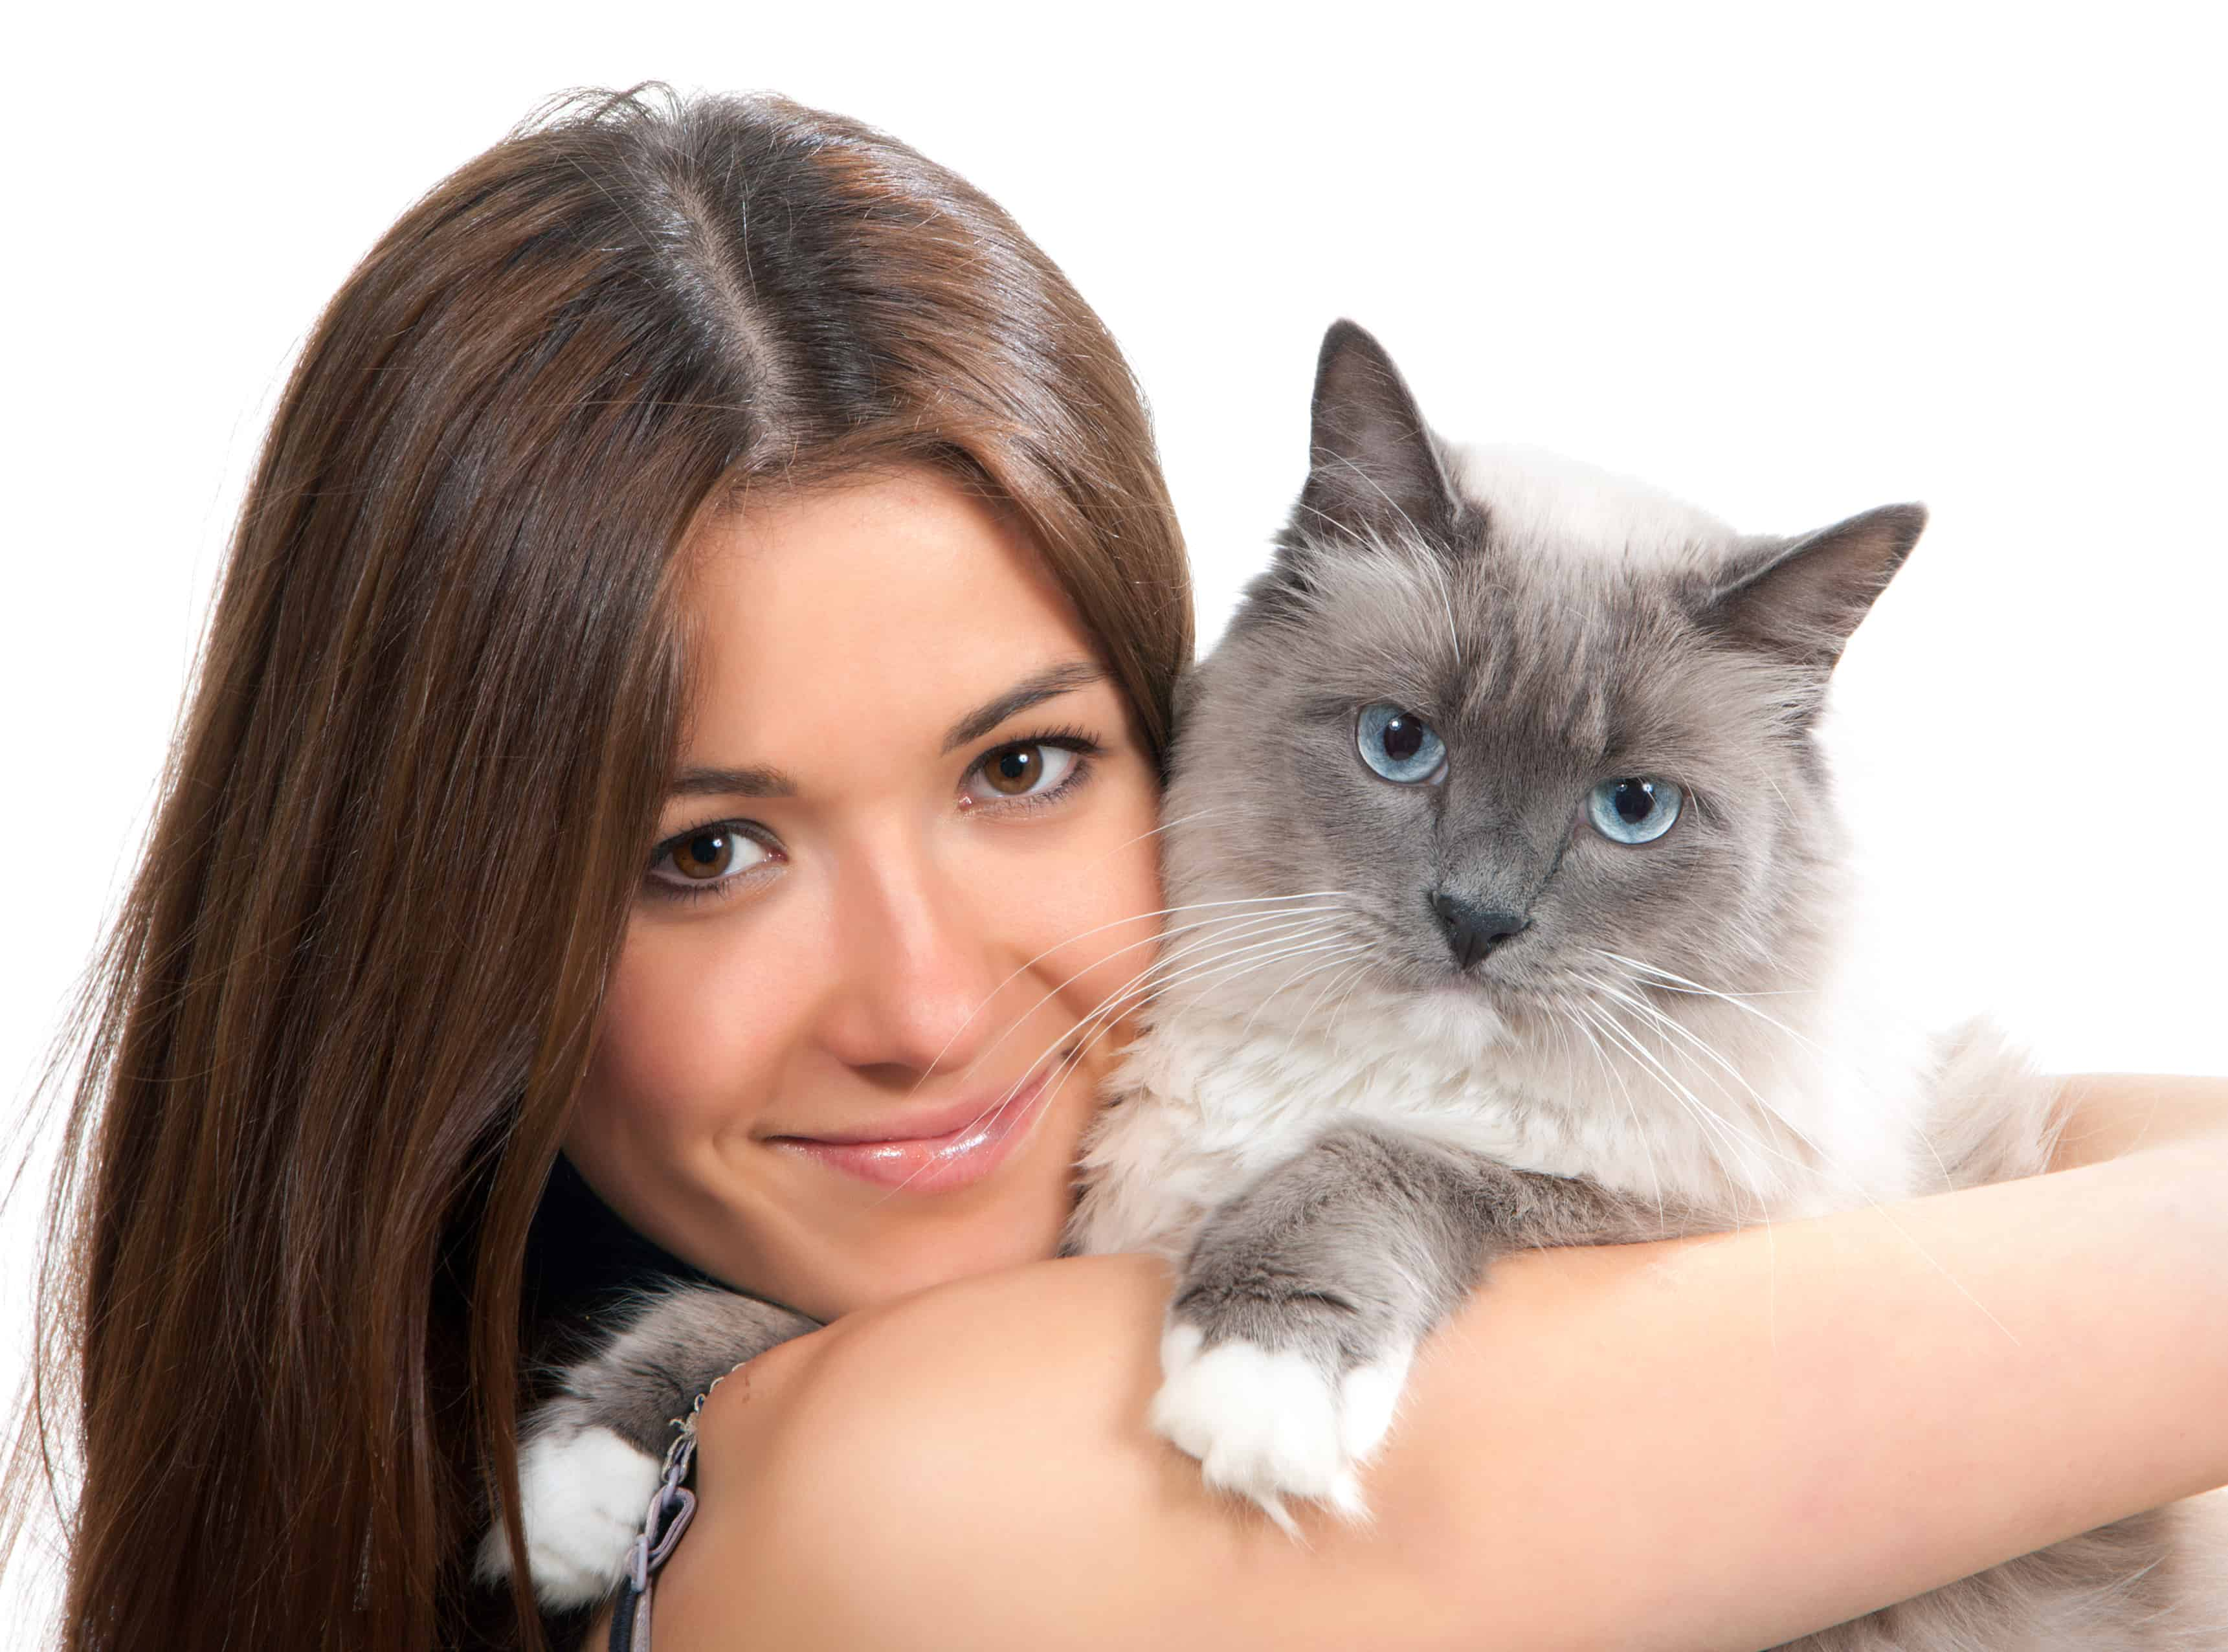 Young woman hold Ragdoll cat blue eye and smile isolated on a white background